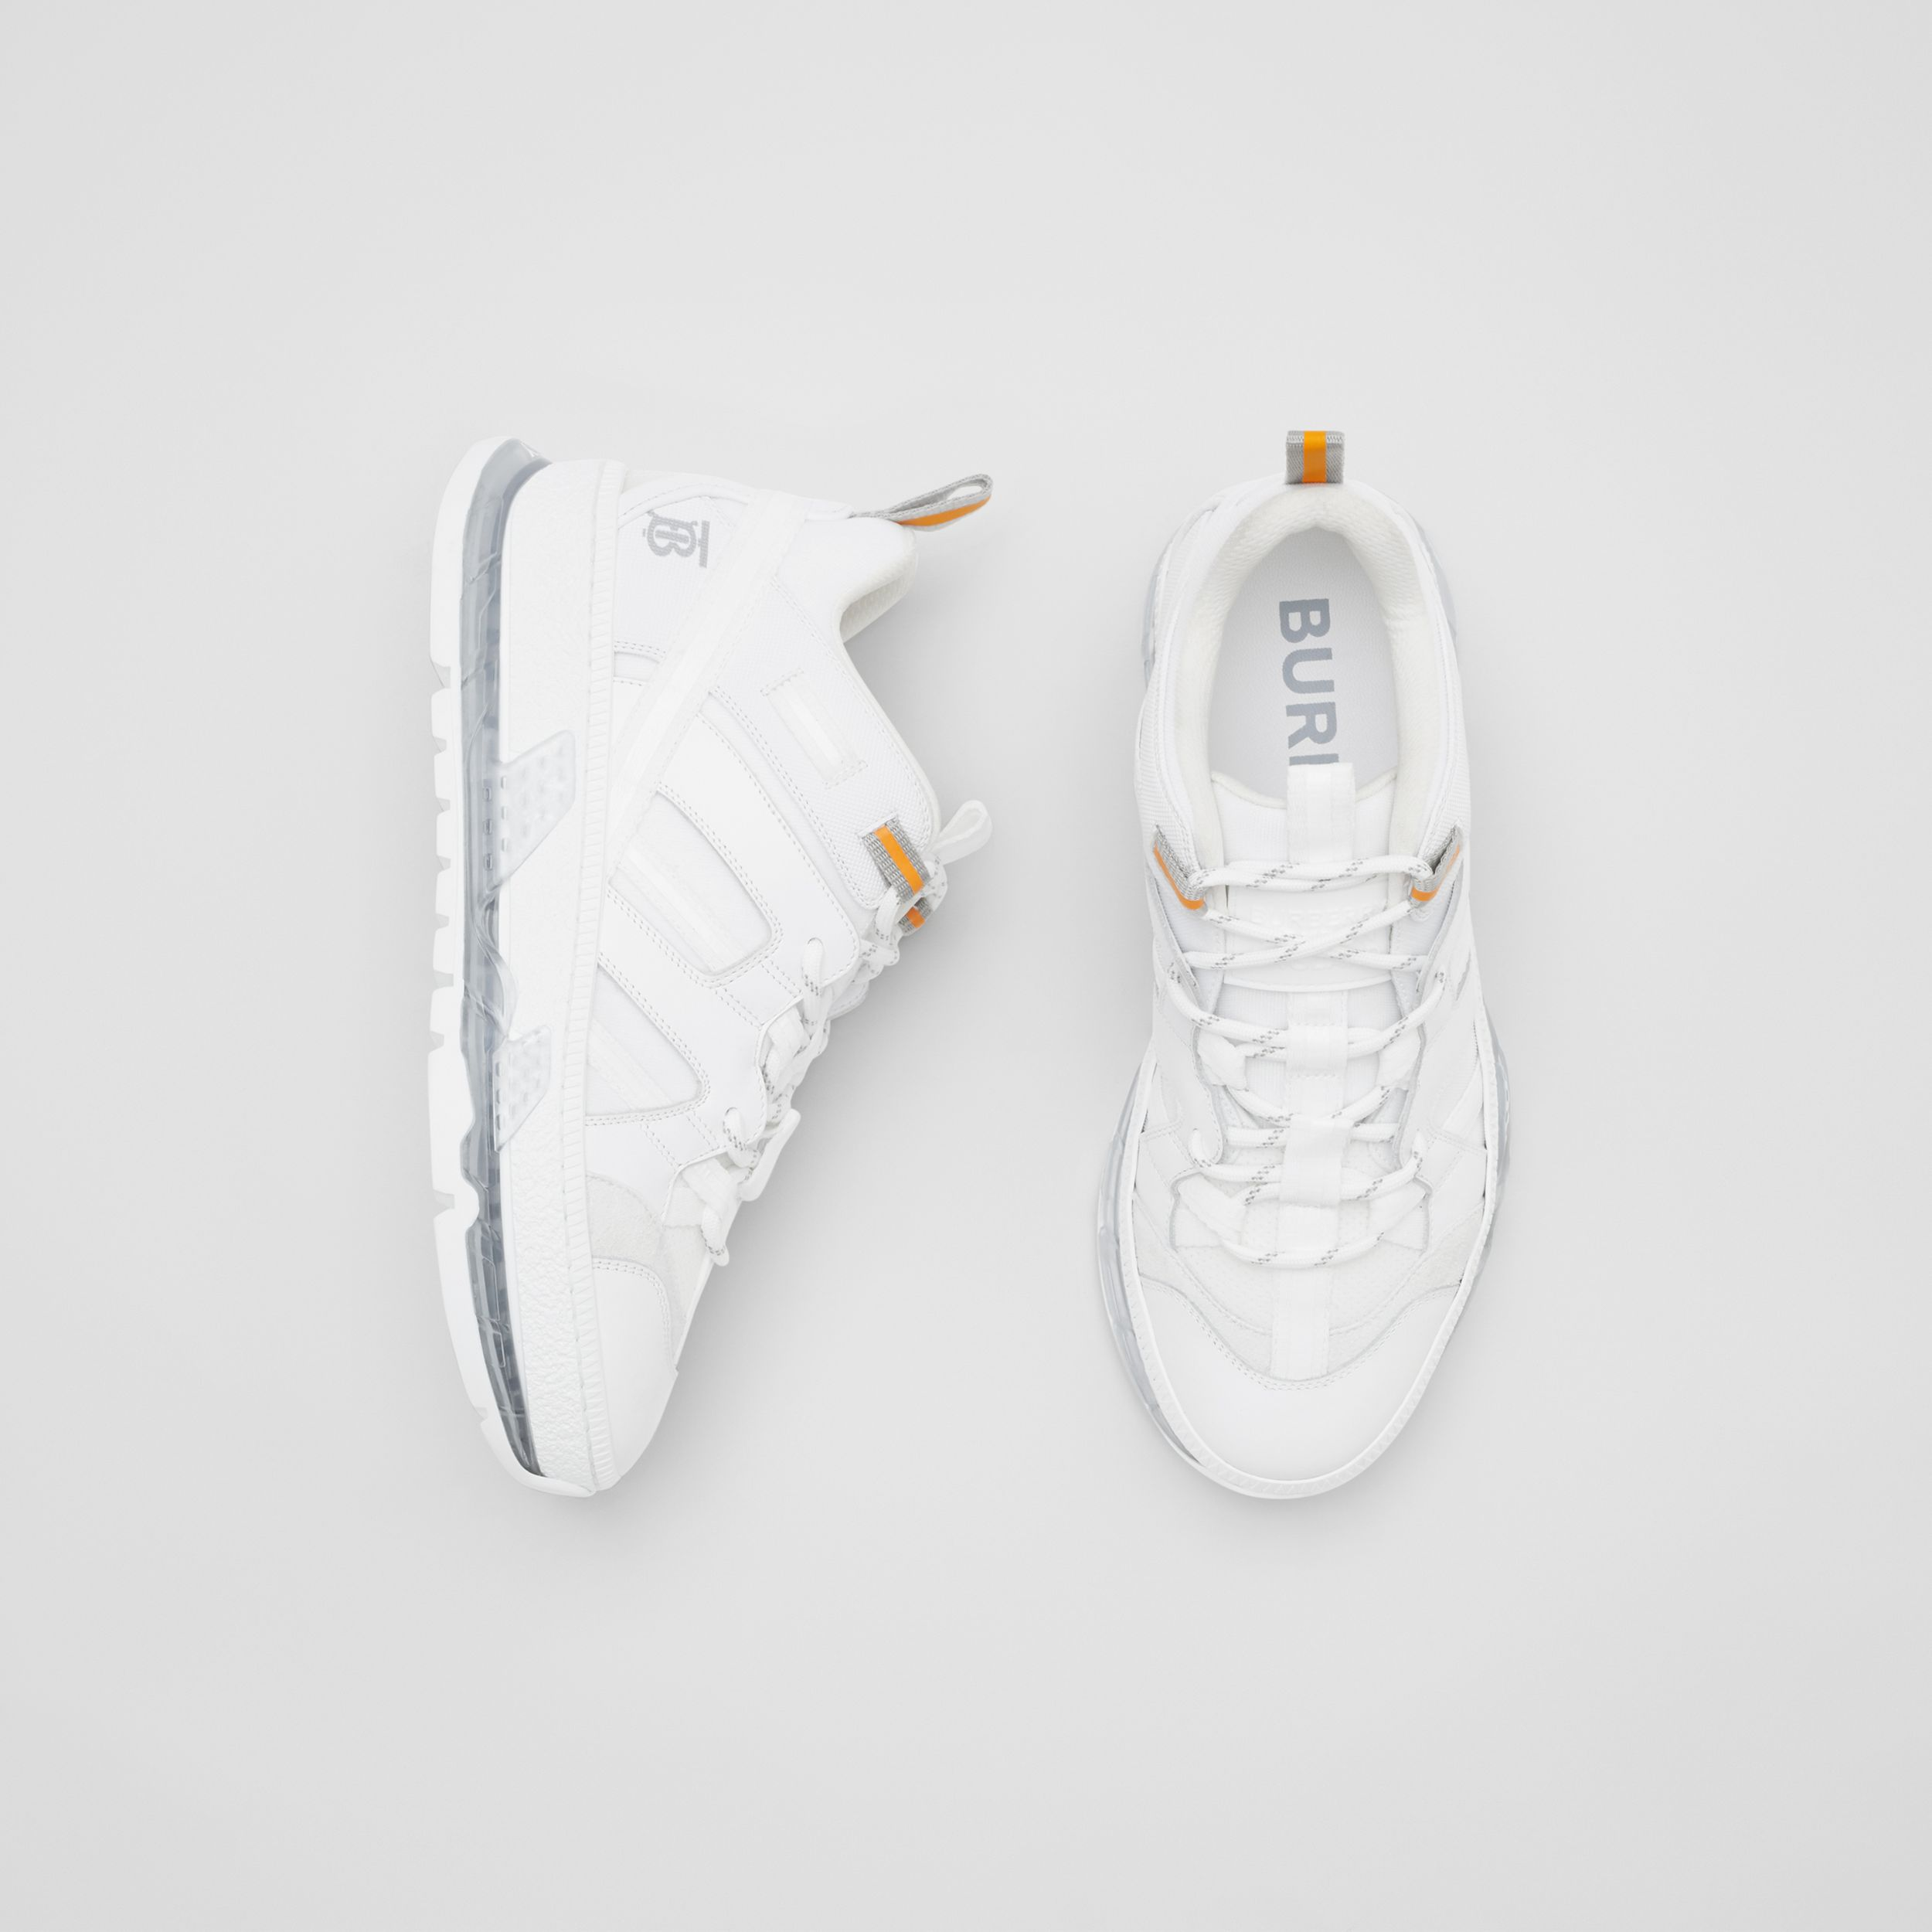 Nylon and Leather Union Sneakers in Optic White - Women | Burberry - 1